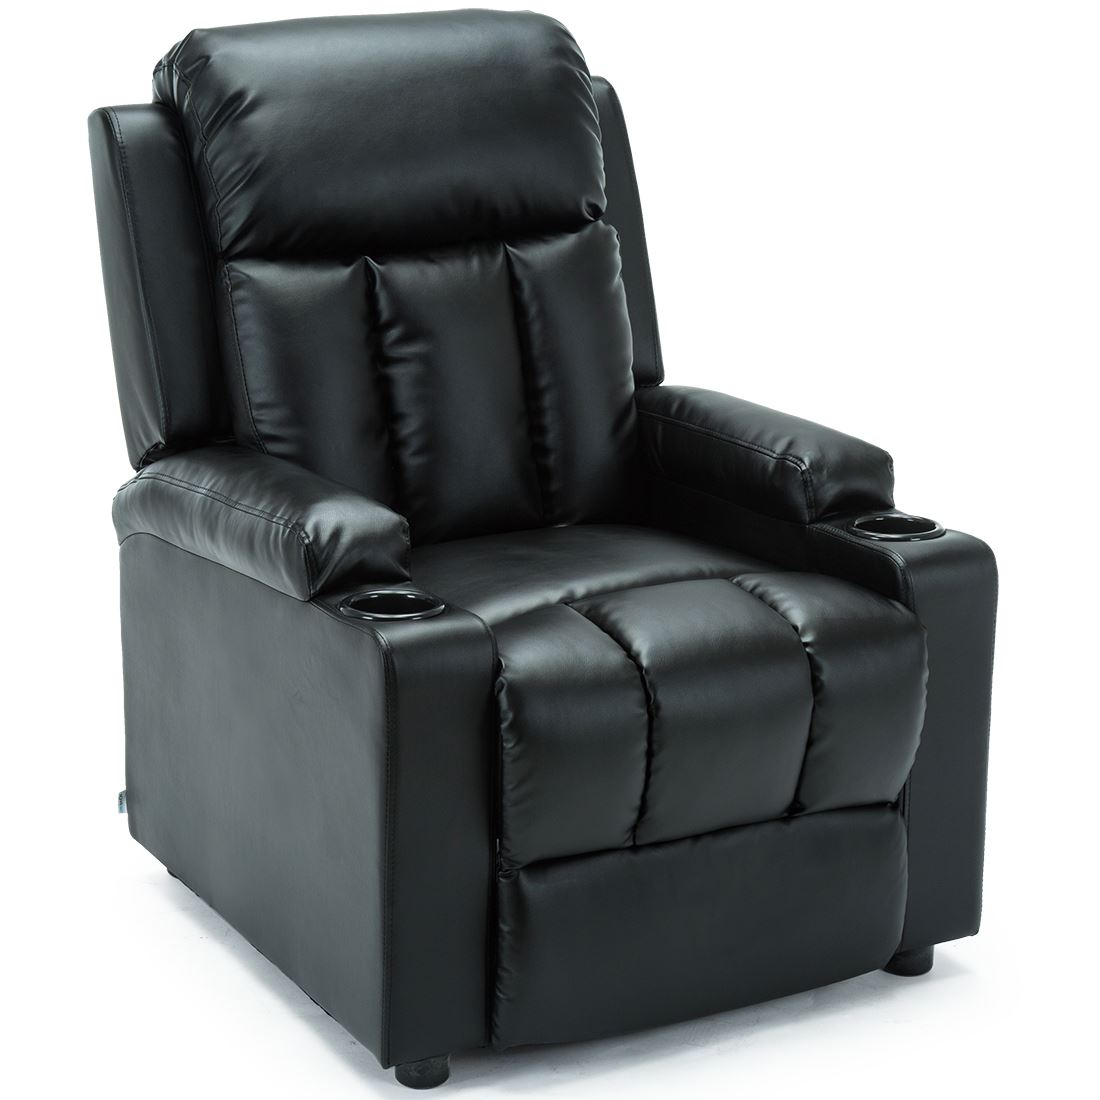 STUDIO-LEATHER-RECLINER-w-DRINK-HOLDERS-ARMCHAIR-SOFA-CHAIR-CINEMA-GAMING thumbnail 4